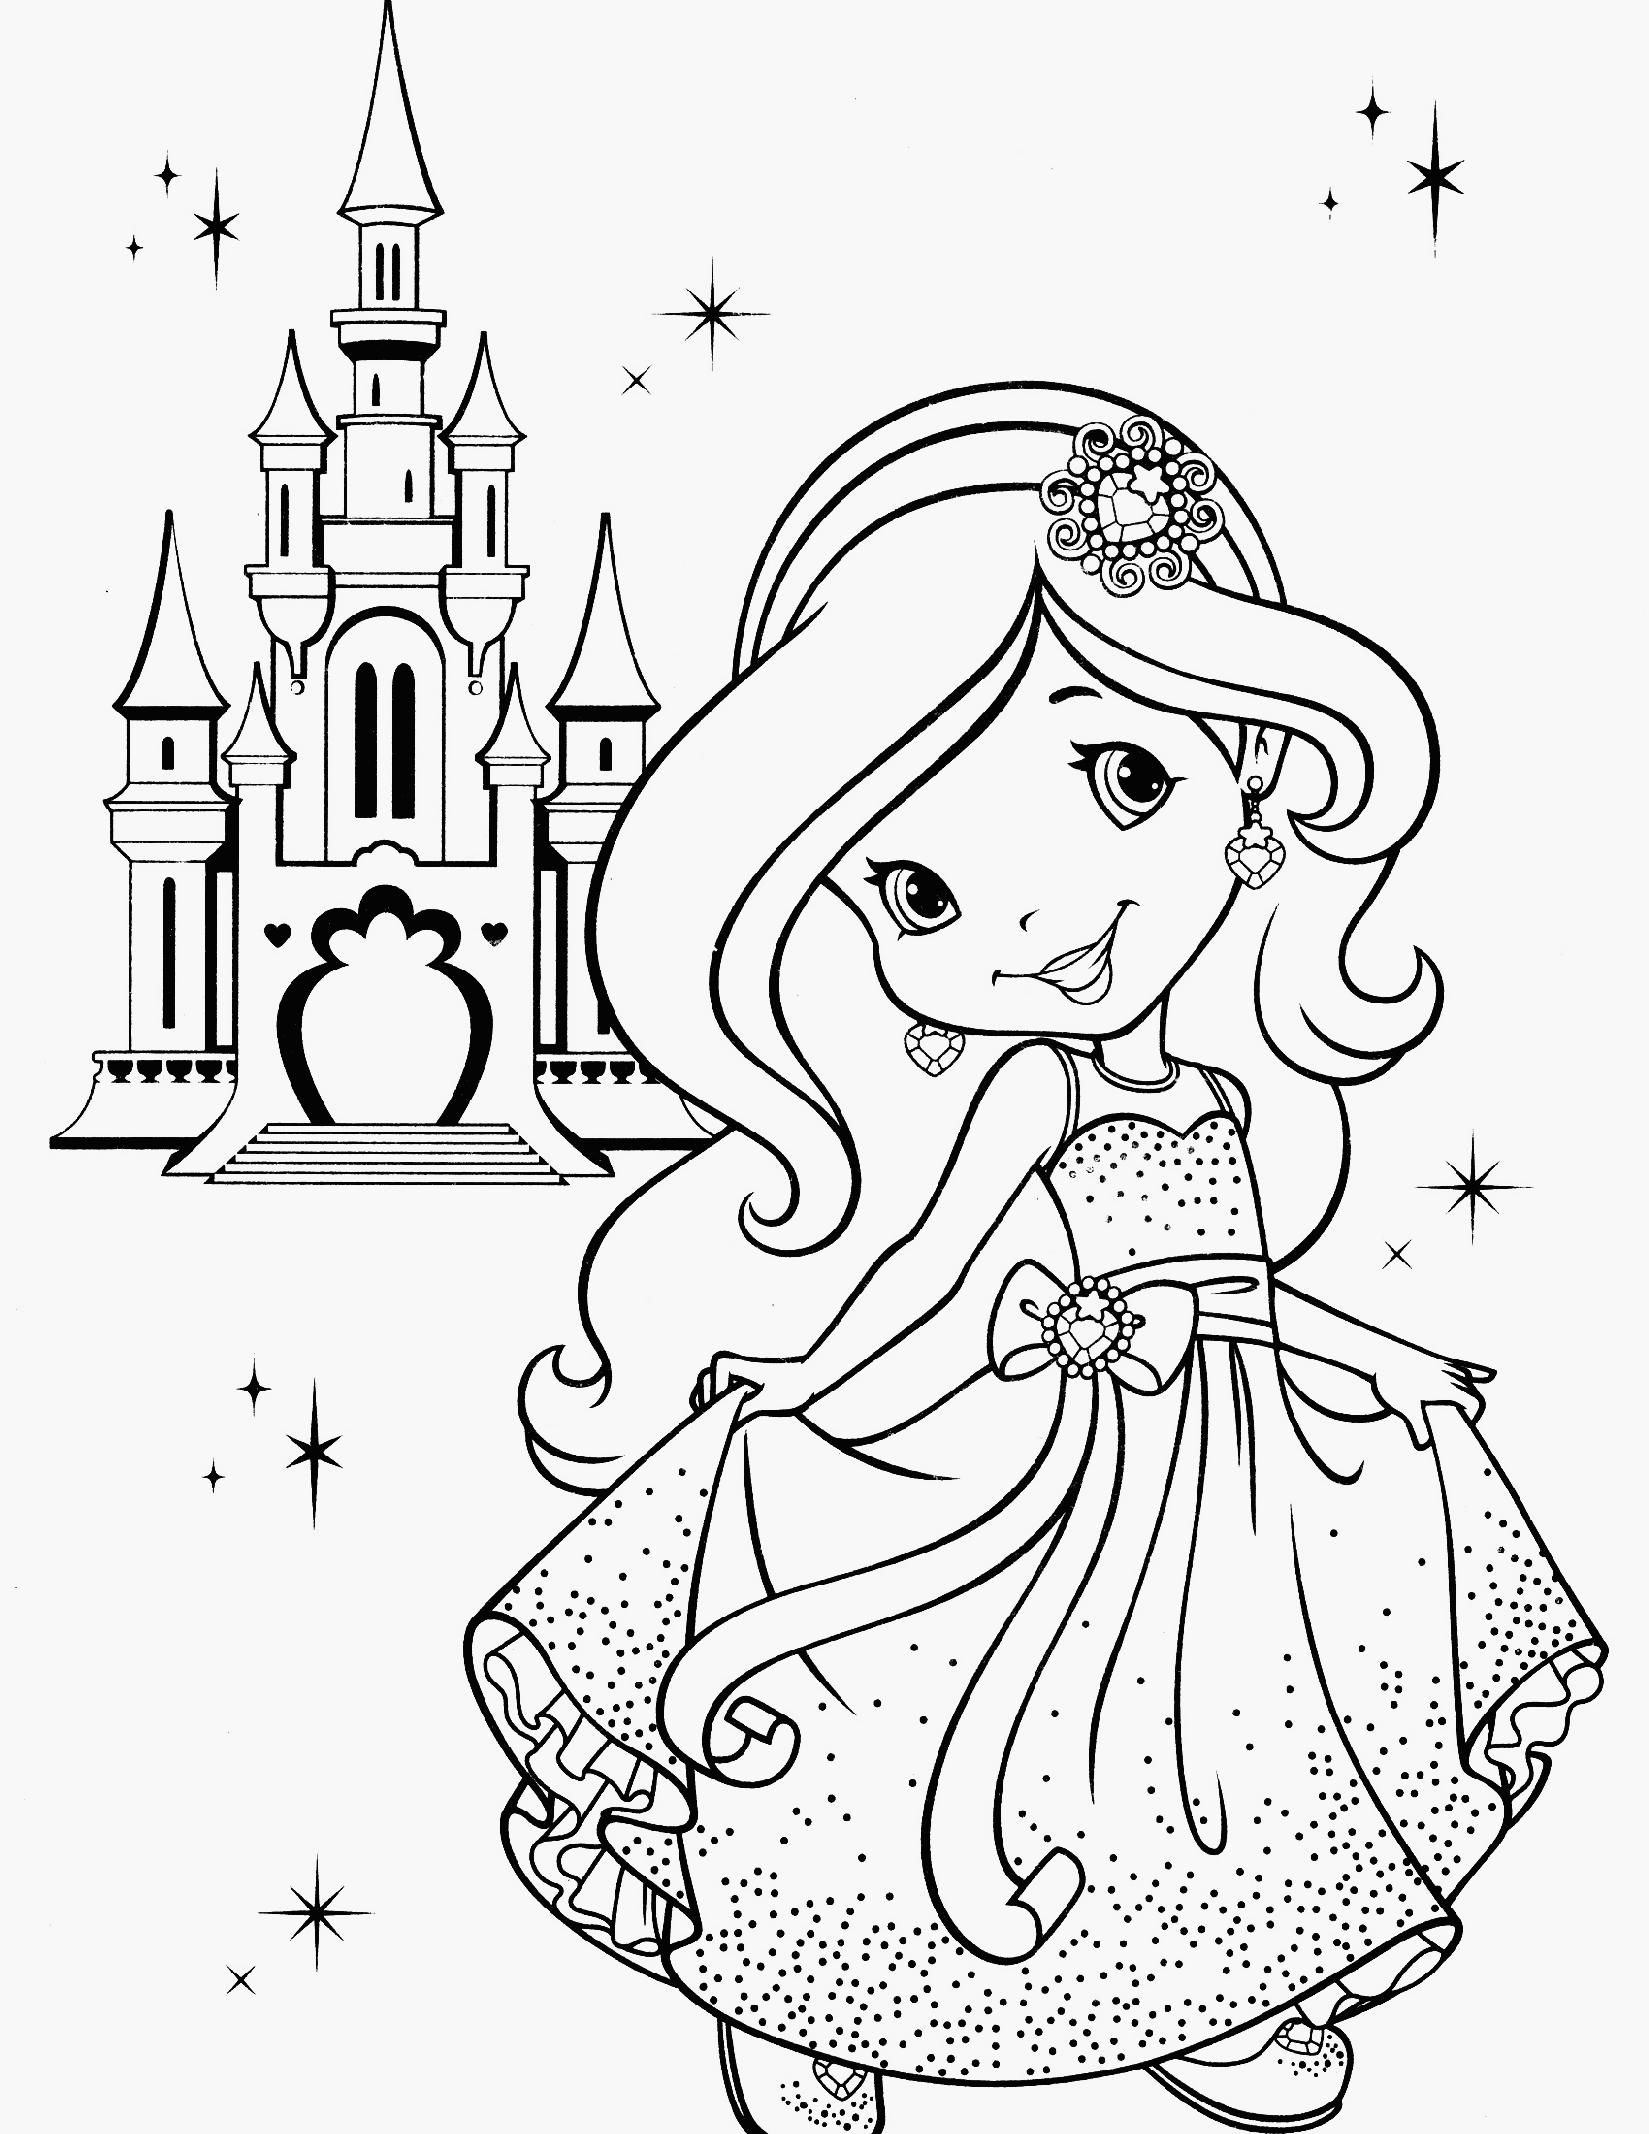 strawberry-shortcake-and-friends-coloring-pages-67079.jpg (JPEG ...